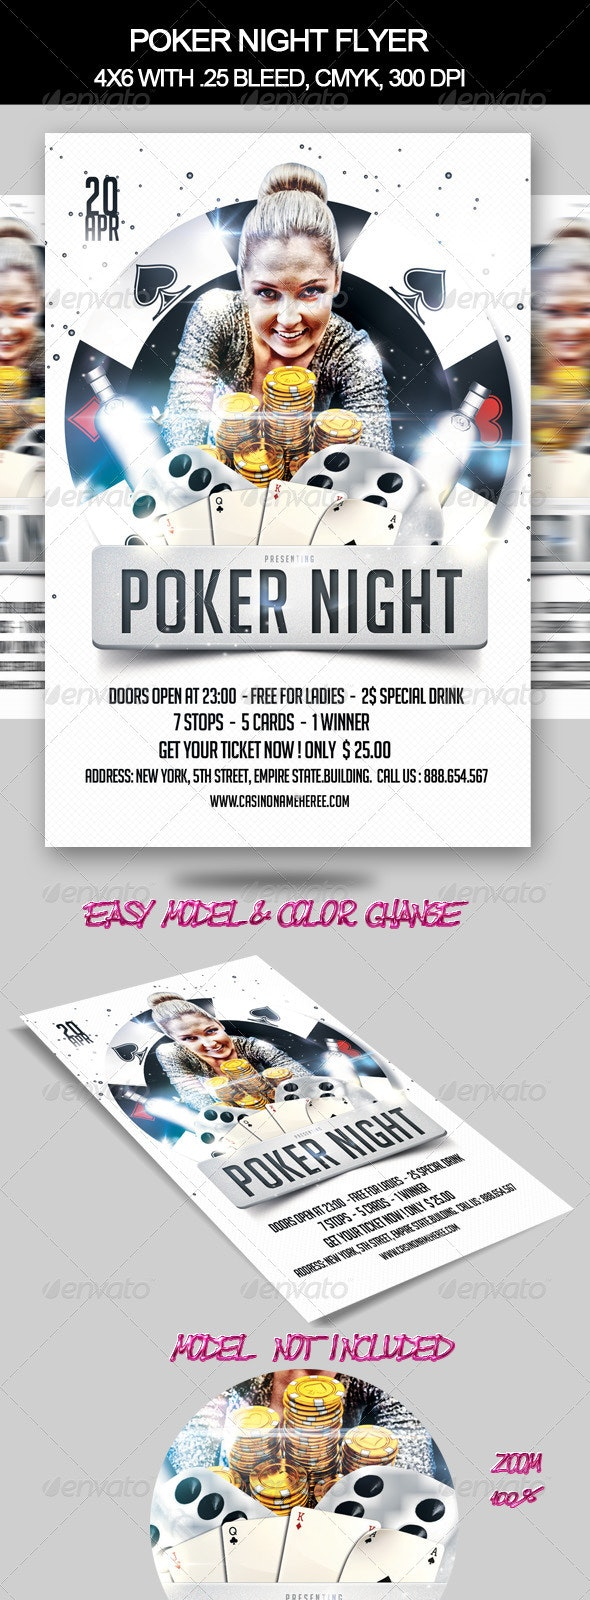 Poker Night Flyer  - Clubs & Parties Events